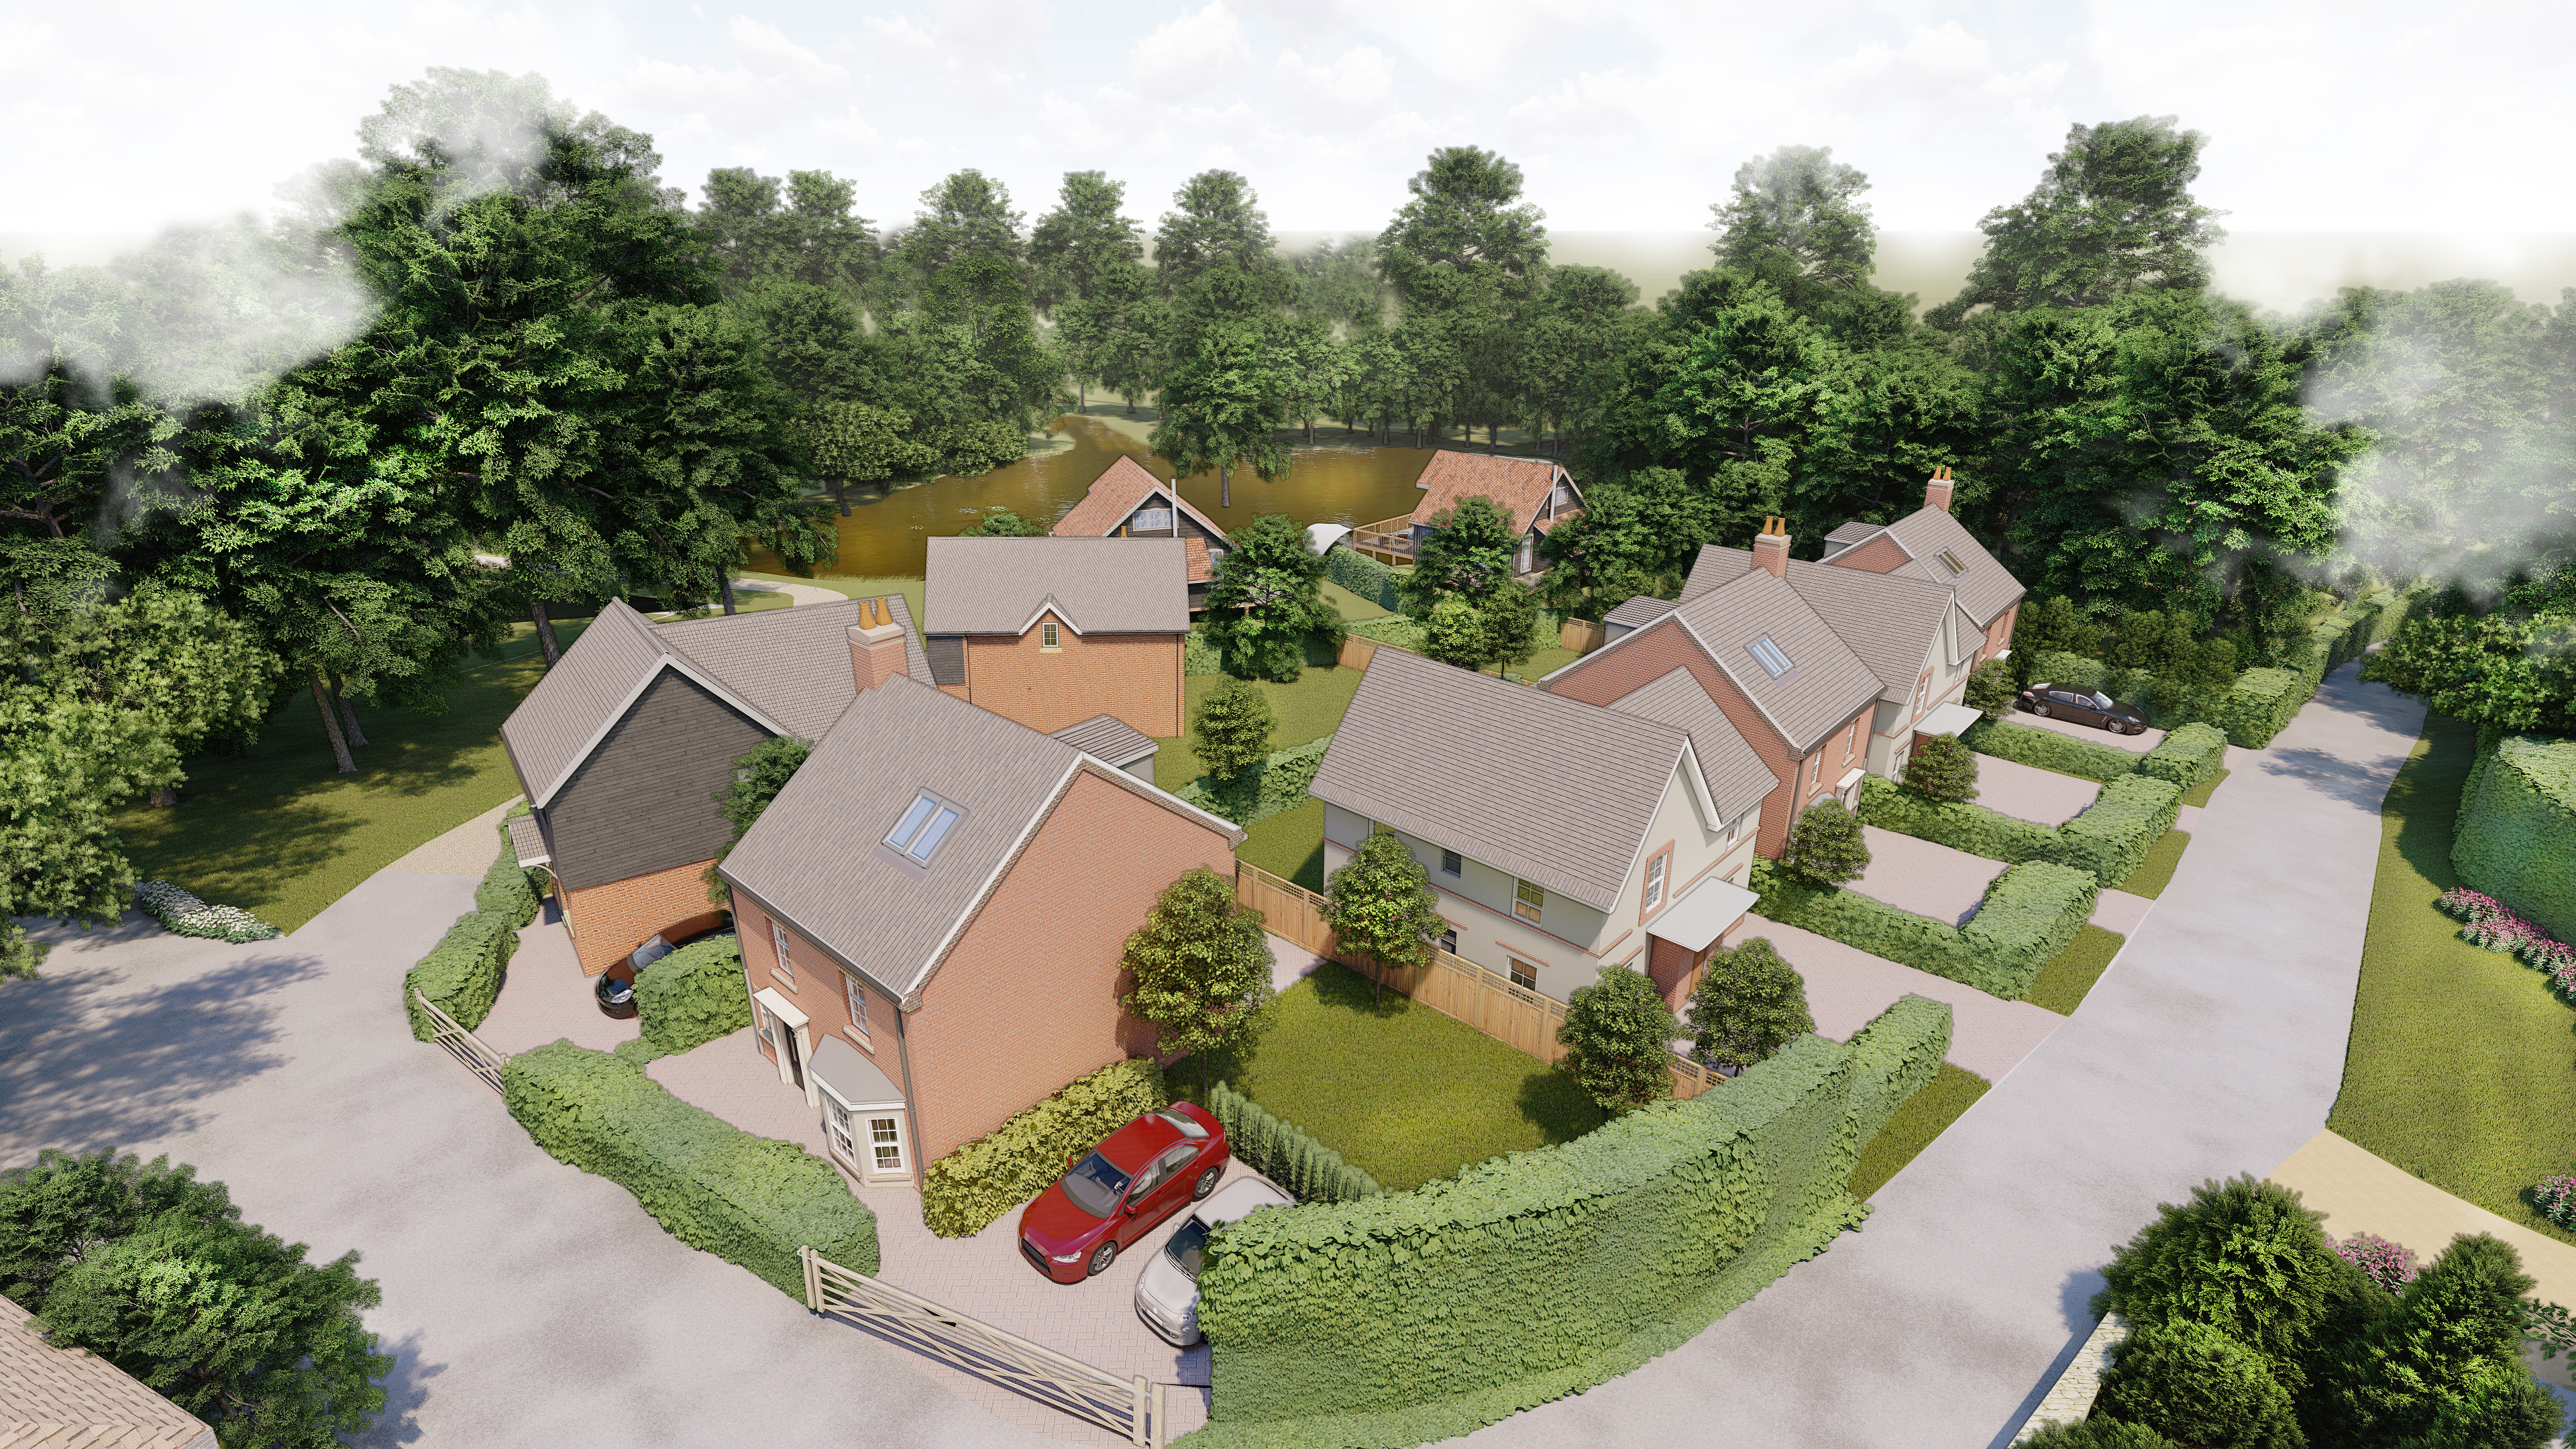 Exterior Image 4 - Land at Shamley Green